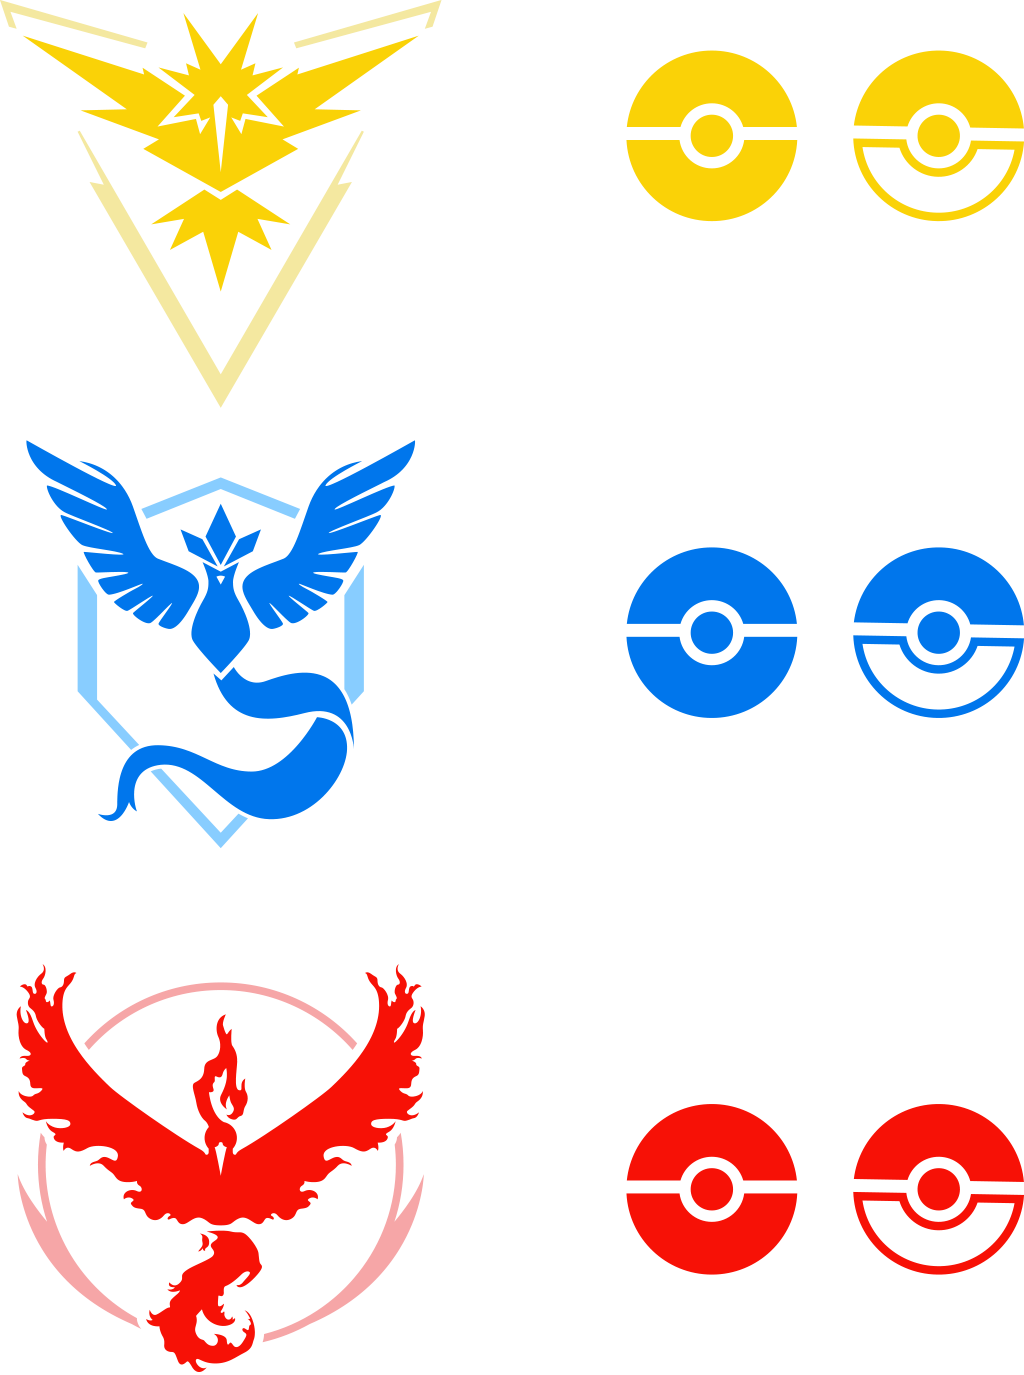 pokemon go team png logos 3177